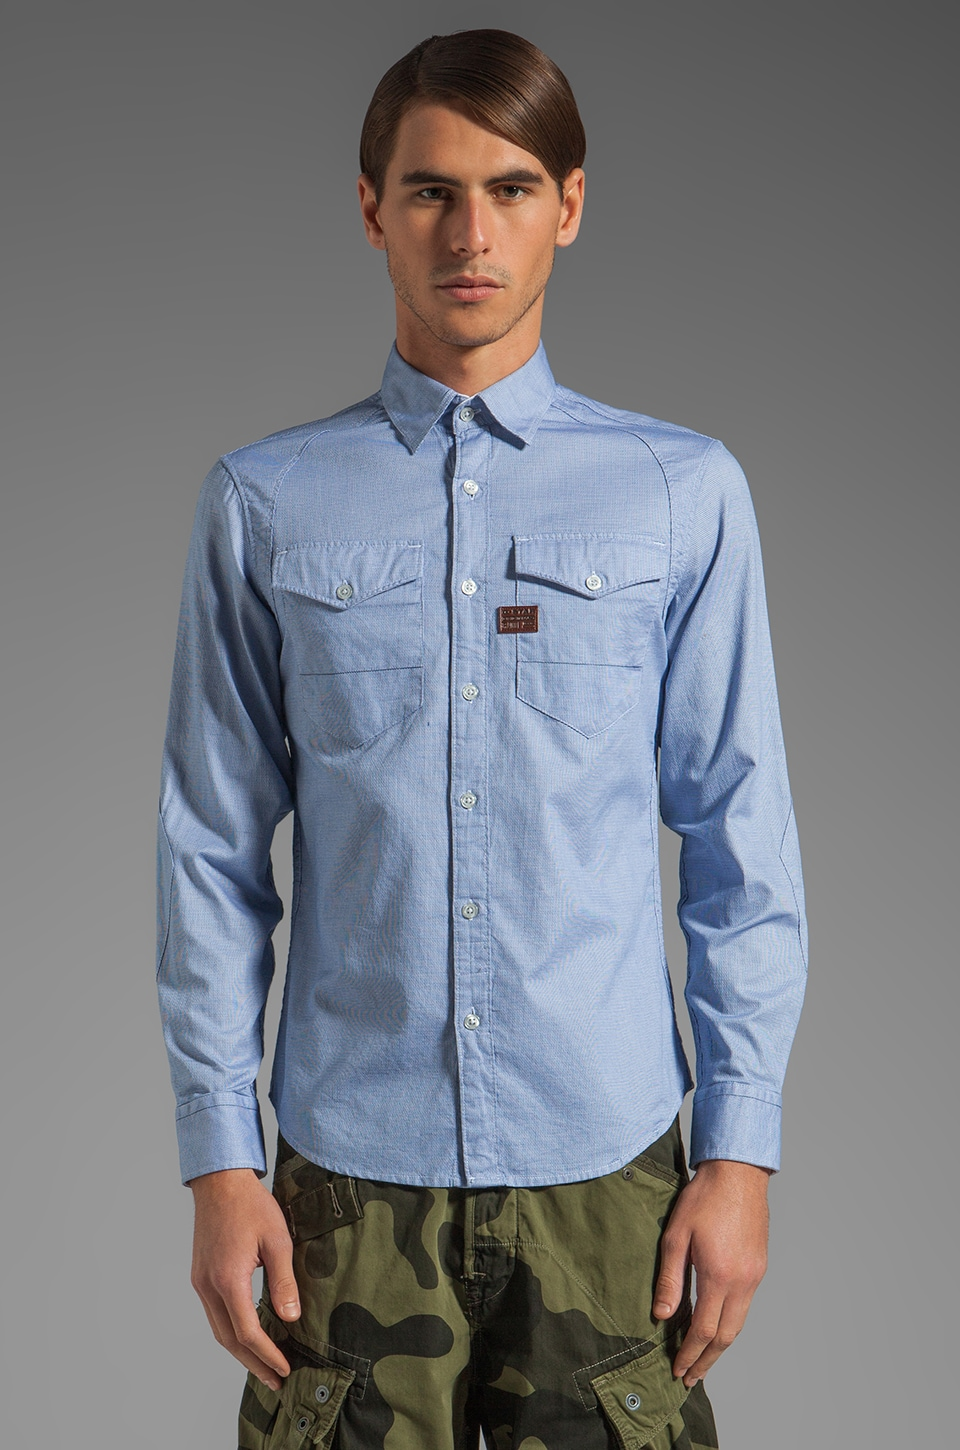 G-Star Arizona Stockton Shirt in Reflex Blue